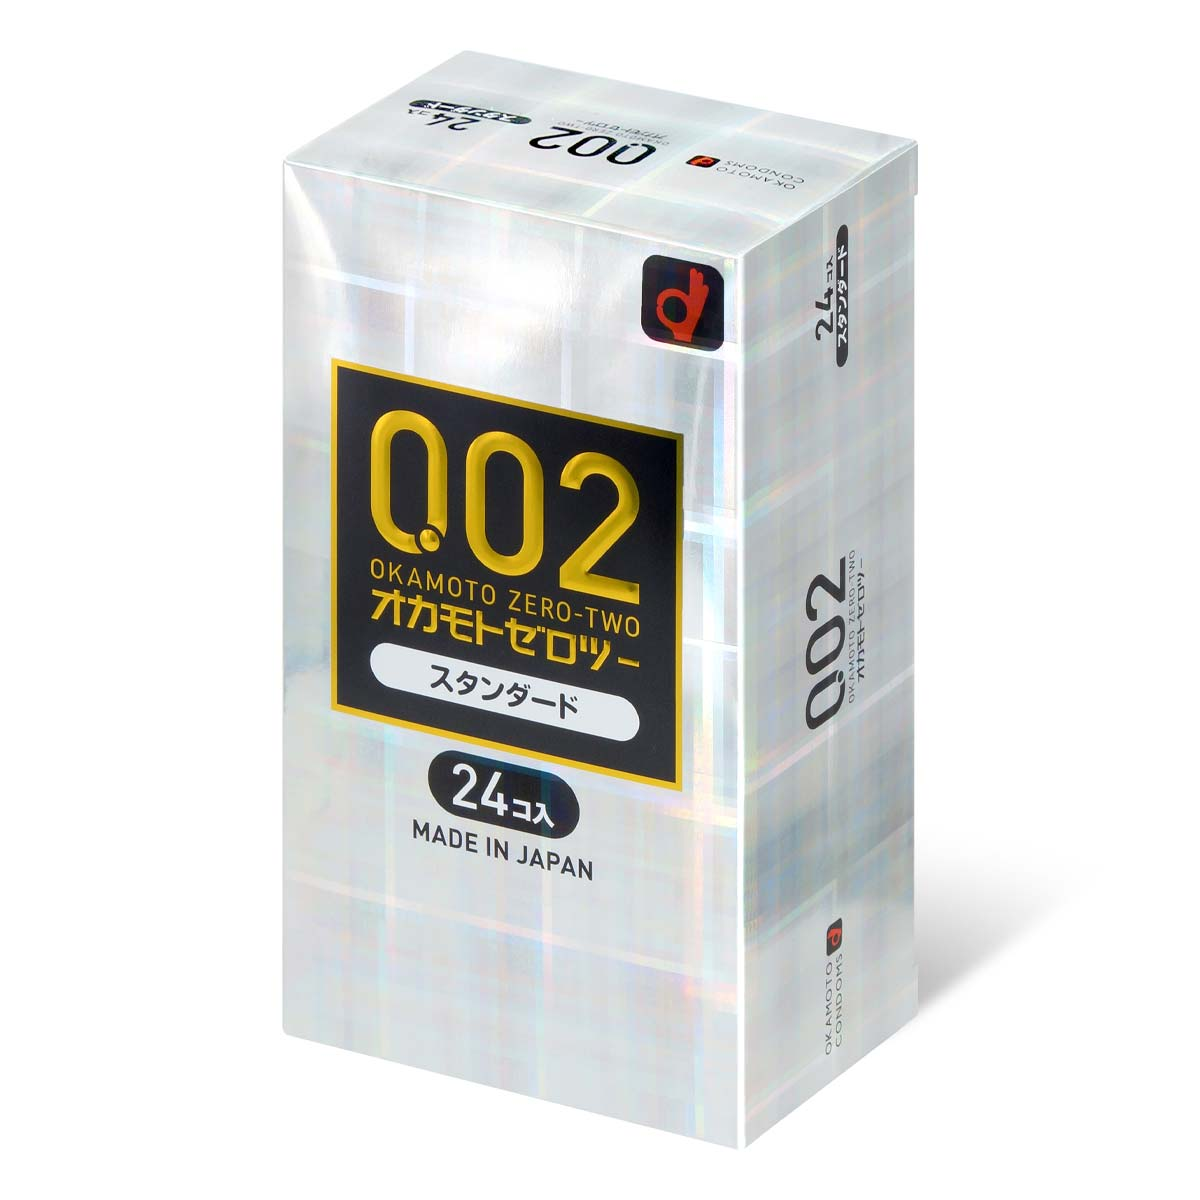 Okamoto Unified Thinness 0.02EX (Japan Edition) 24's Pack PU Condom